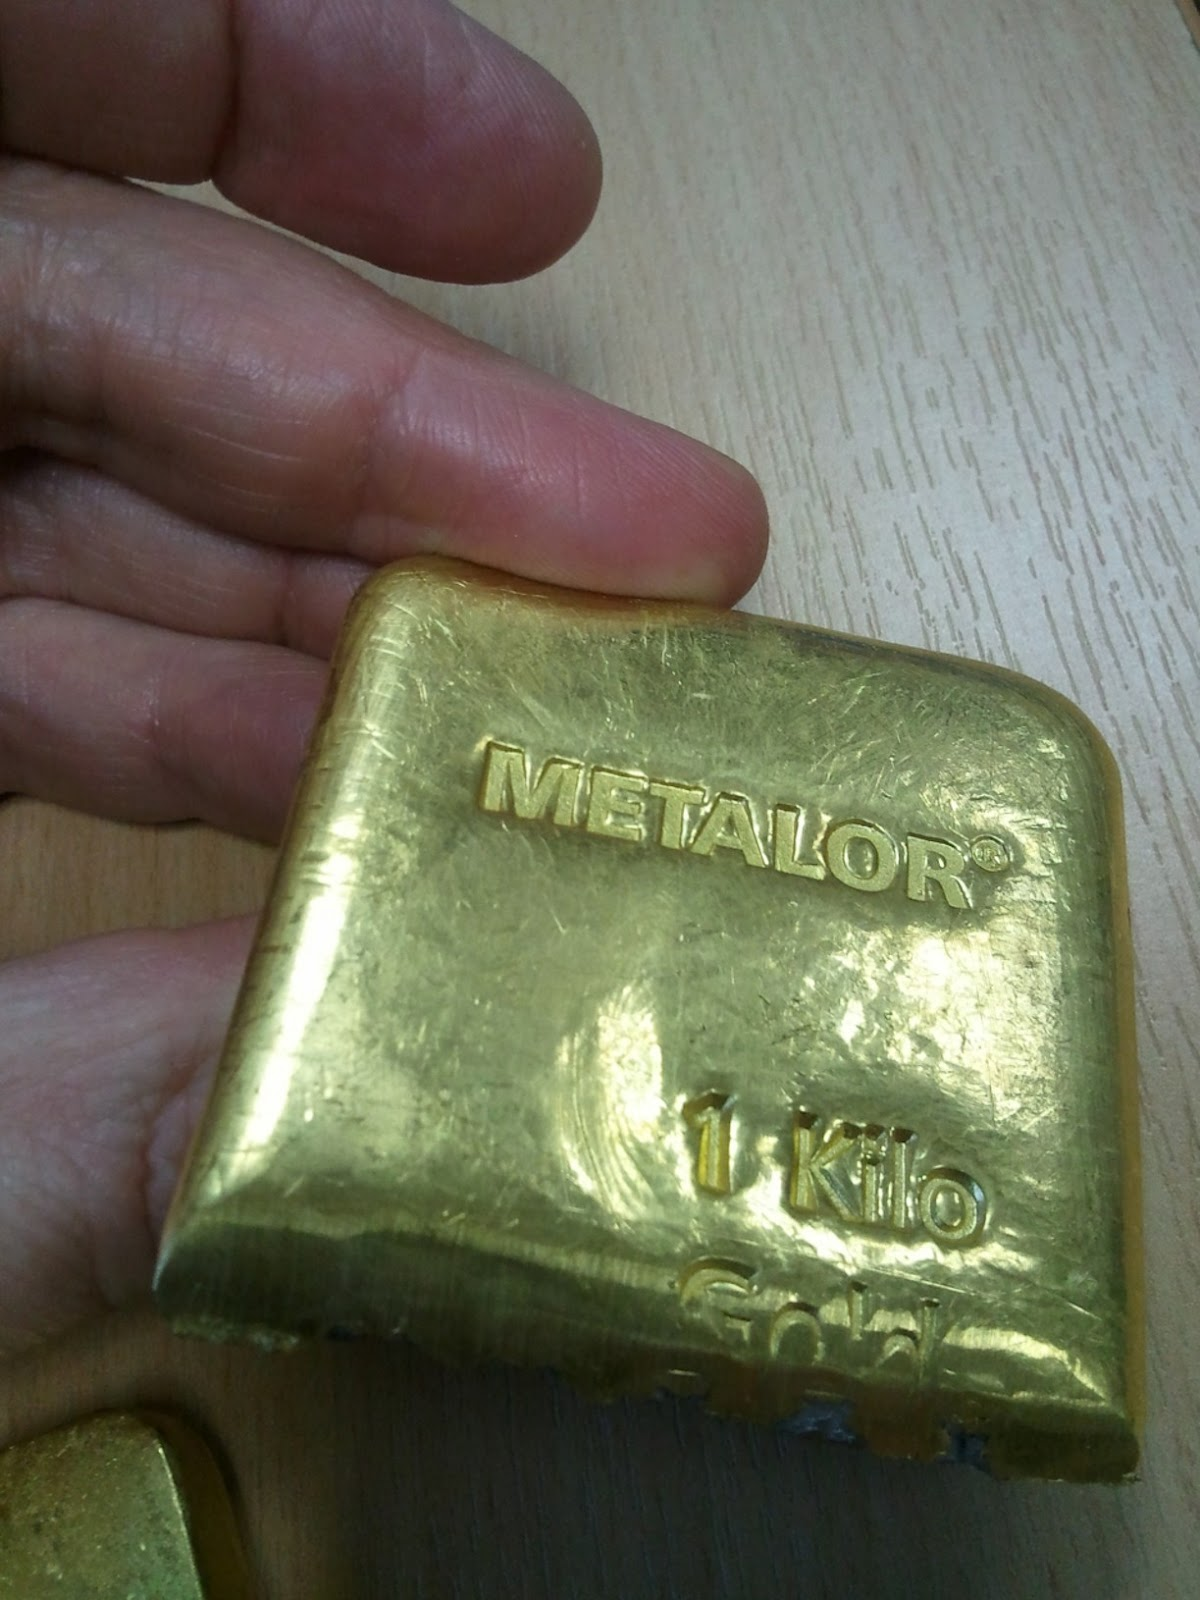 1000g Gold Bar Cut Showing Inserted Tungsten Rods The Two Halves Of